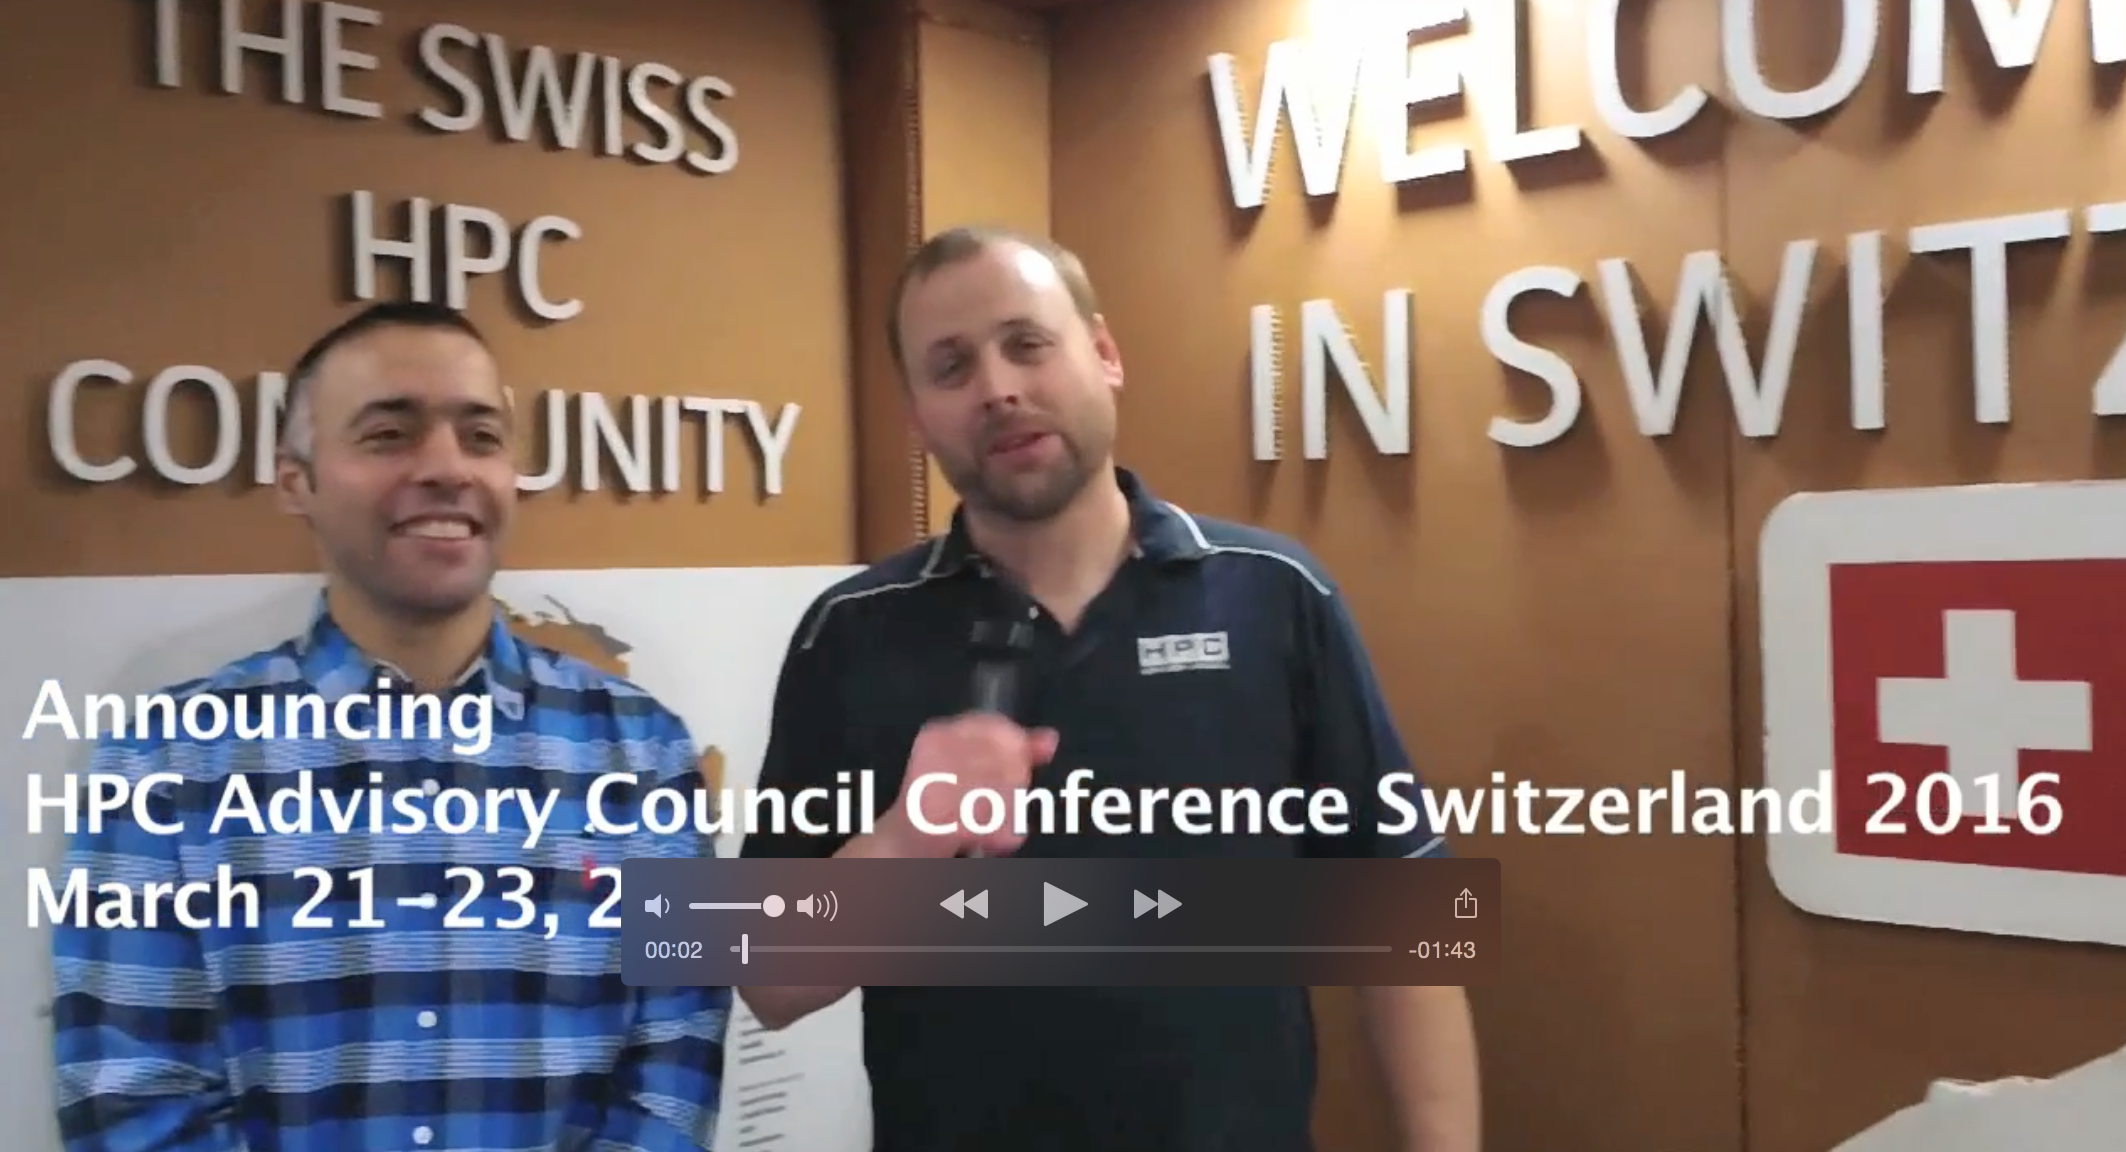 HPC Advisory Council and CSCS Announce Switzerland Conference 2016